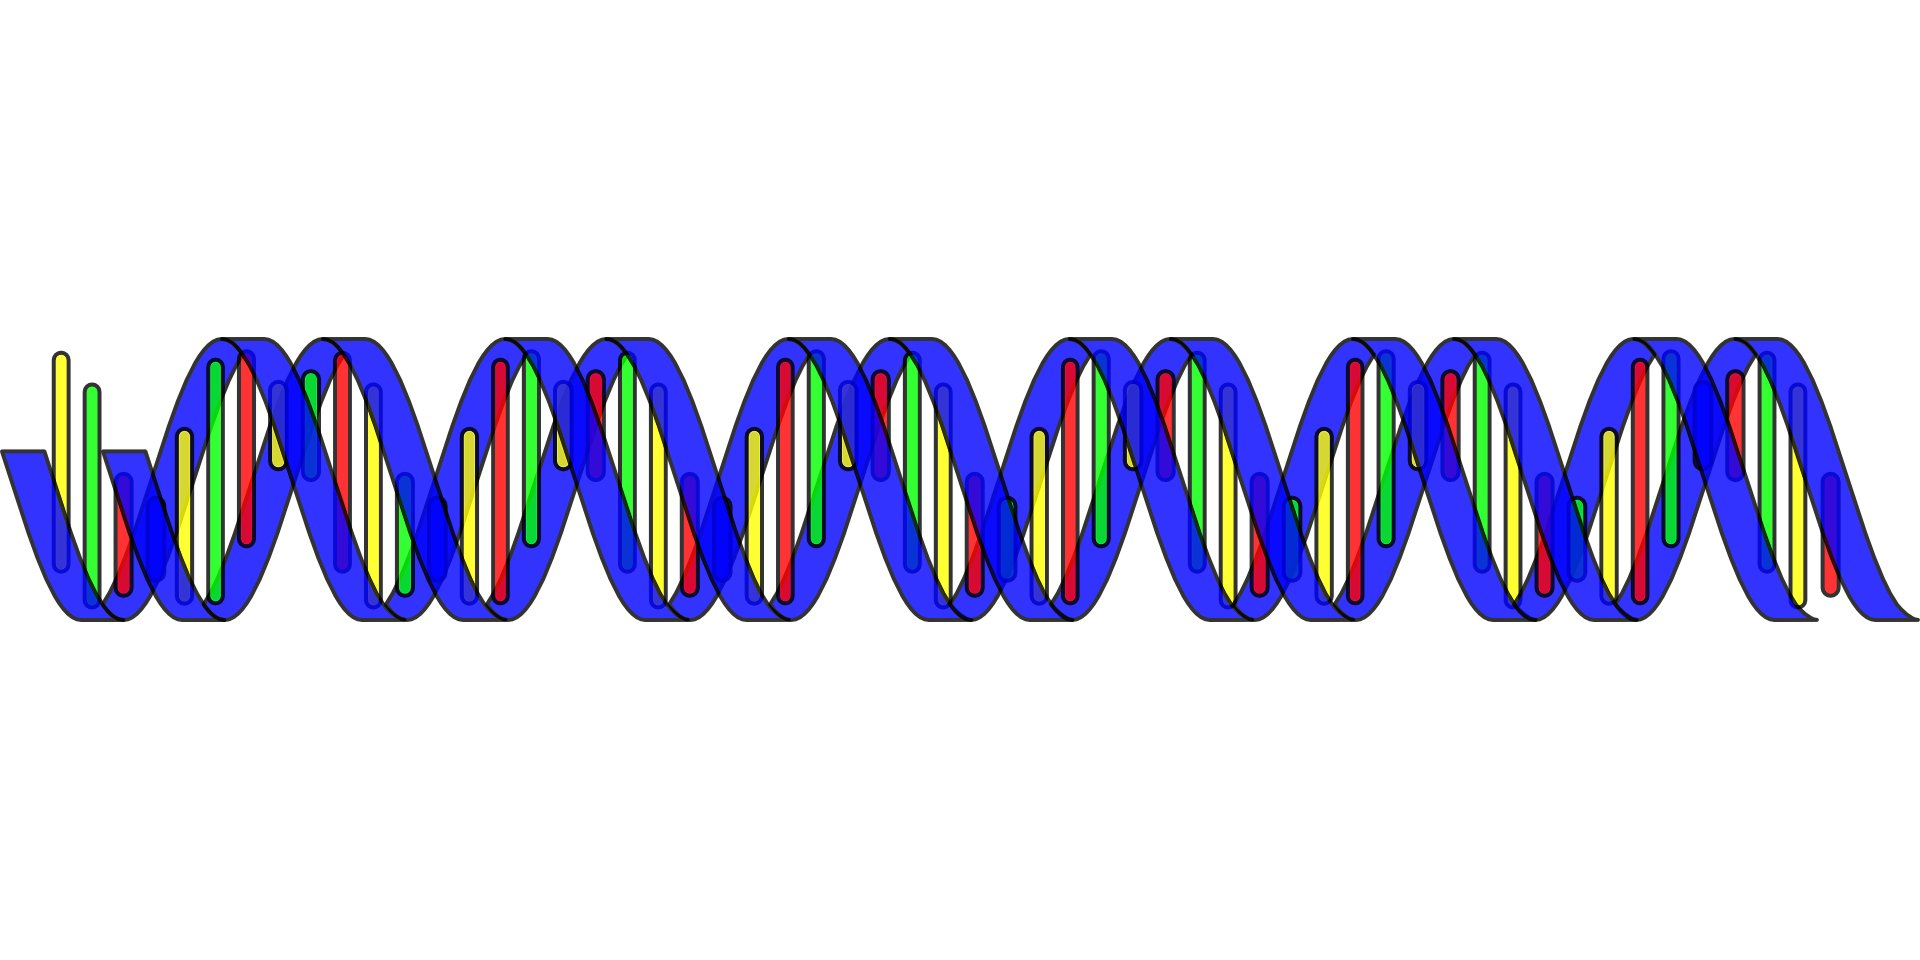 More precise diagnoses made possible with whole genome sequencing